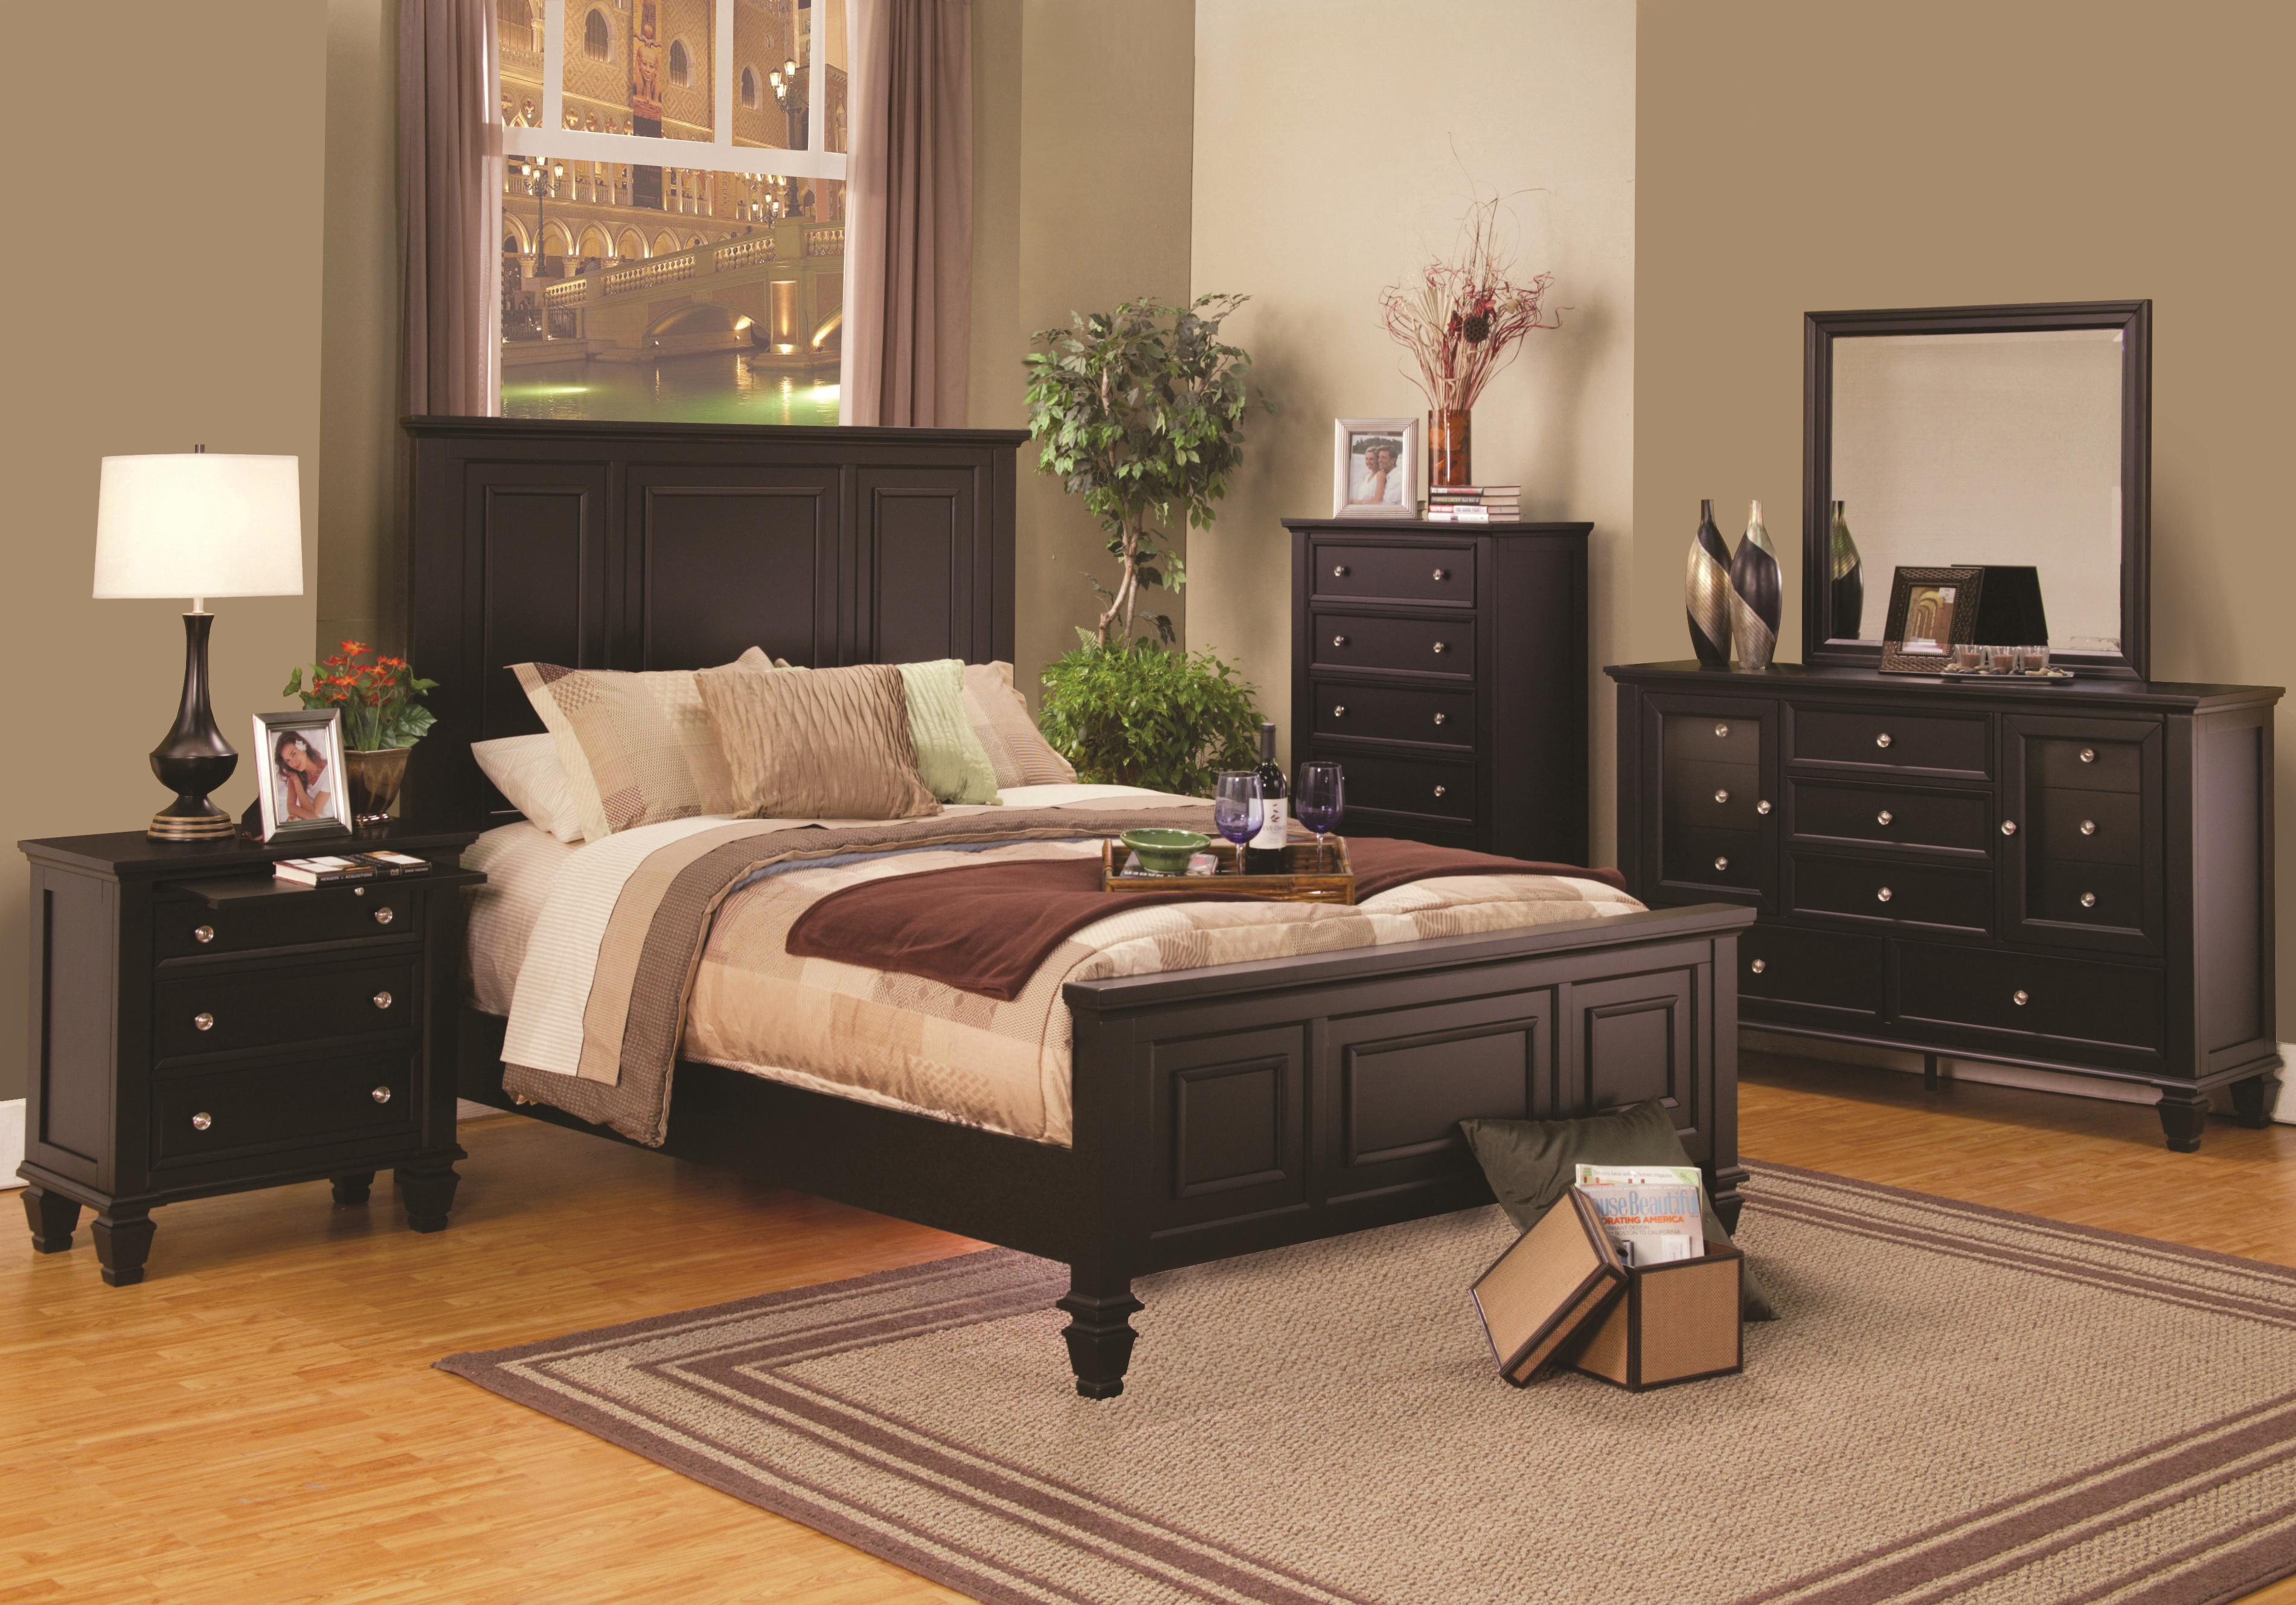 King Size Cappuccino Wood Panel Bed Bedroom Furniture 4pcs